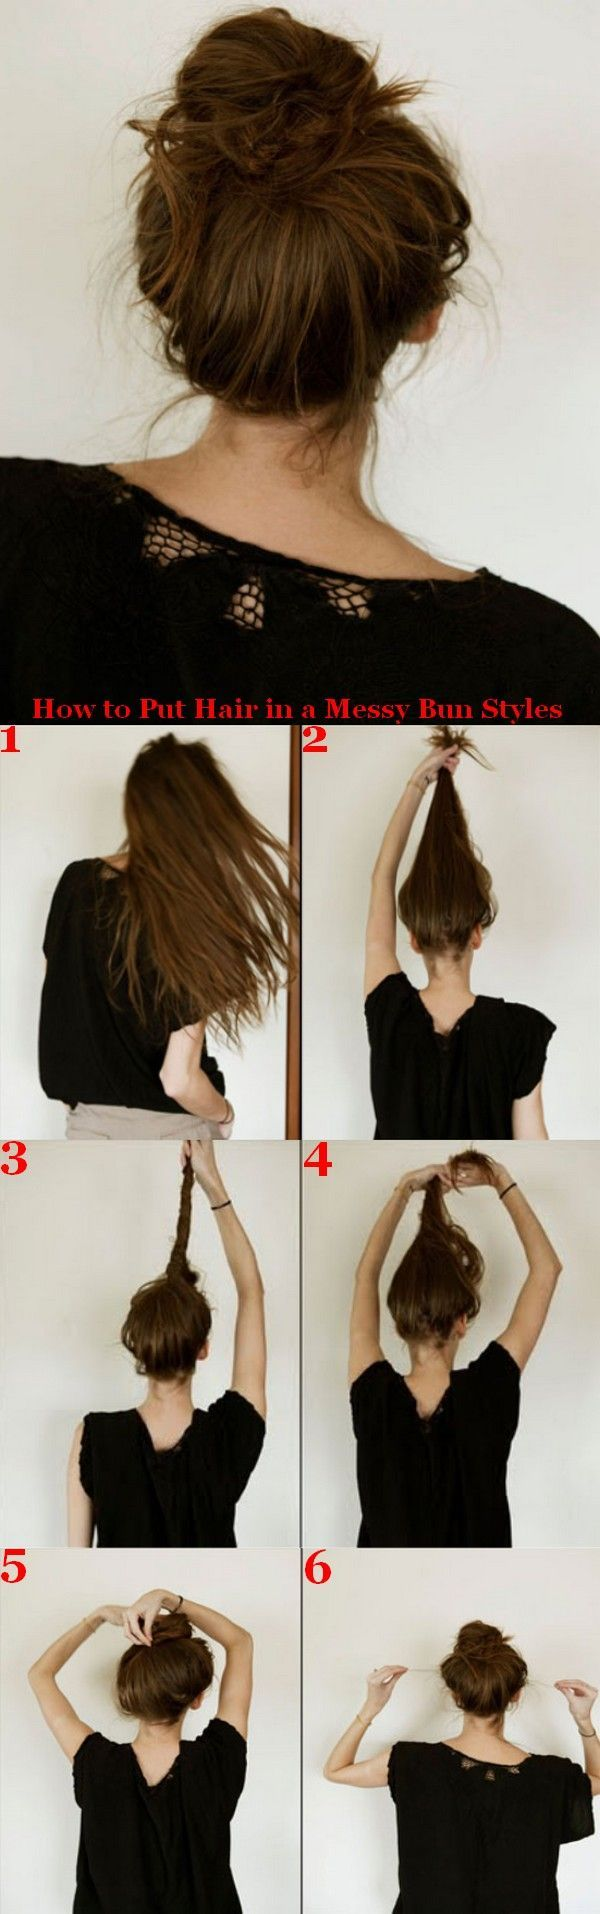 how to put your hair up in different styles how to put hair in a bun styles i at 7574